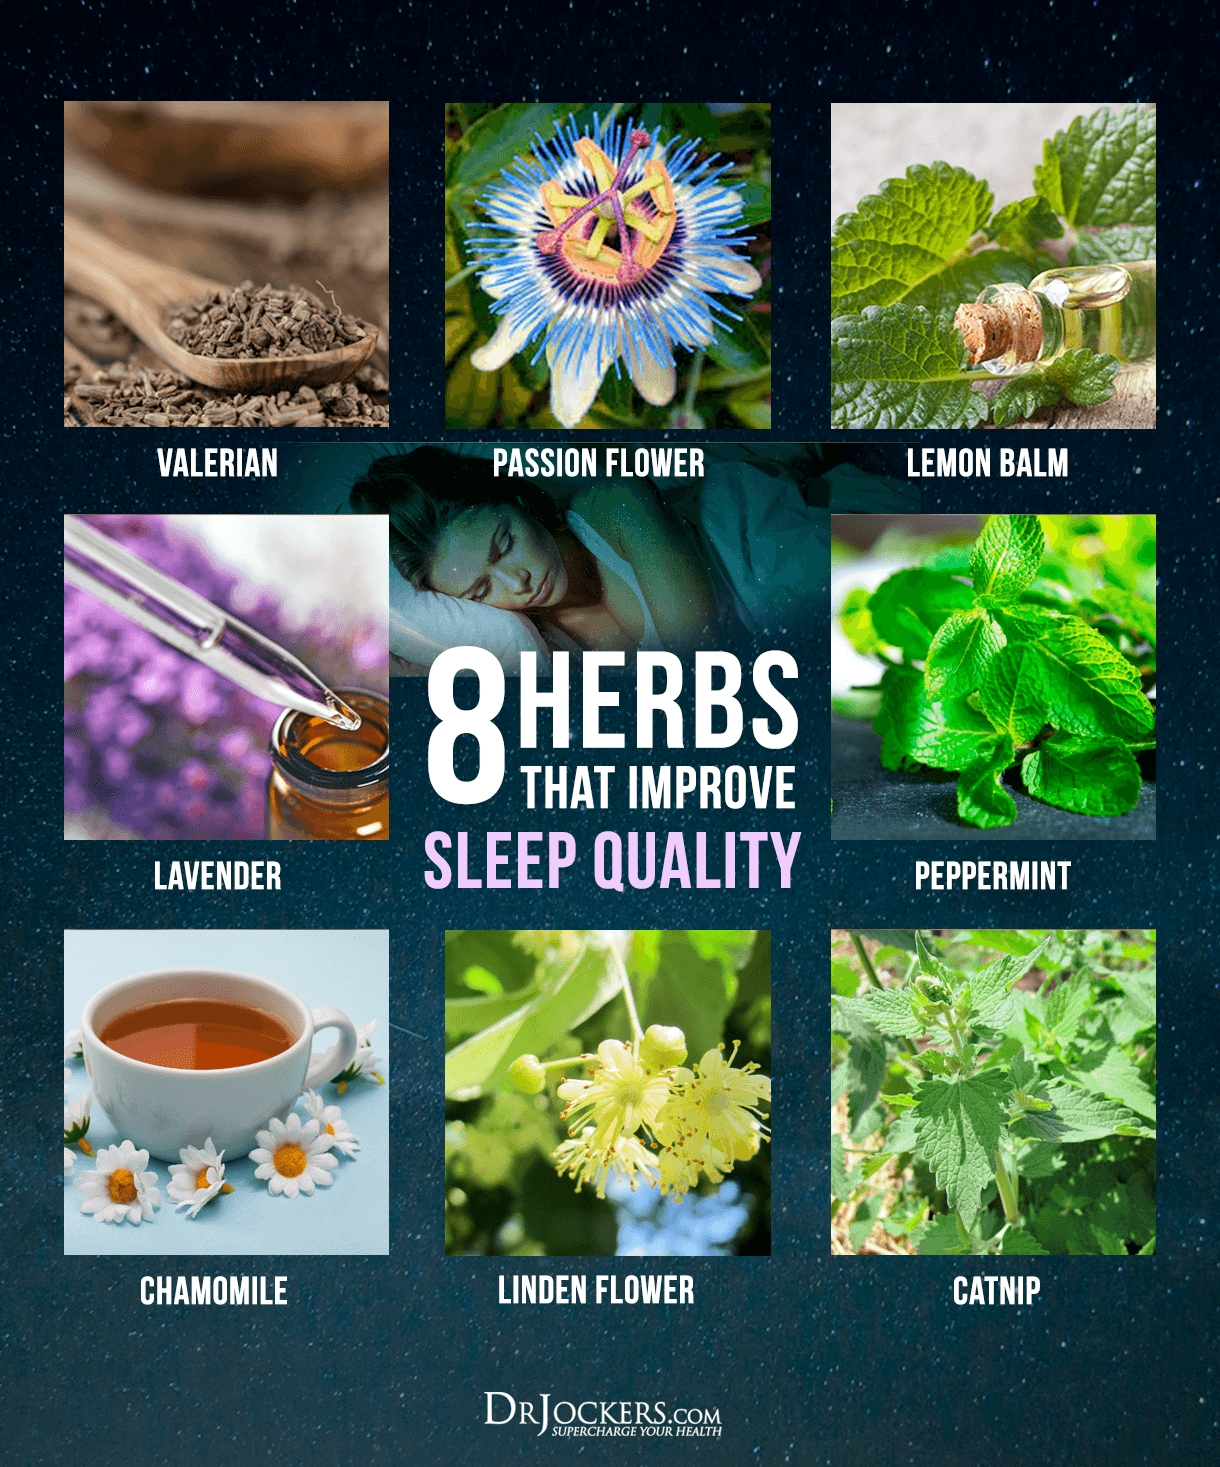 8 Herbs That Improve Sleep Quality - Drjockers regarding Herbs That Help You Sleep 46906